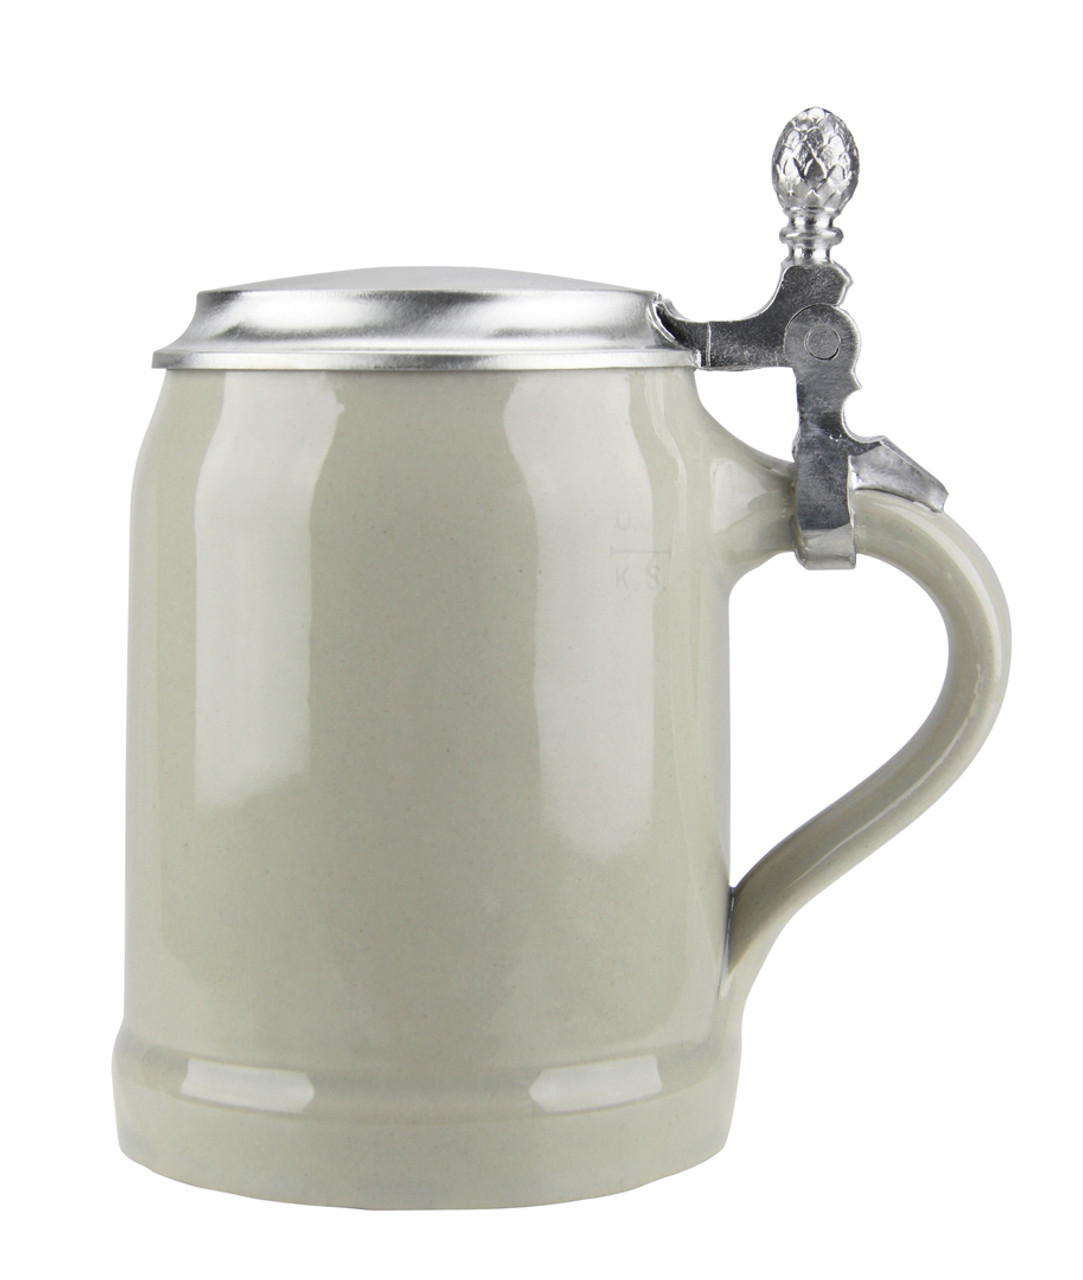 This ceramic beer stein will fill your friends with envy and your enemies with reluctant respect